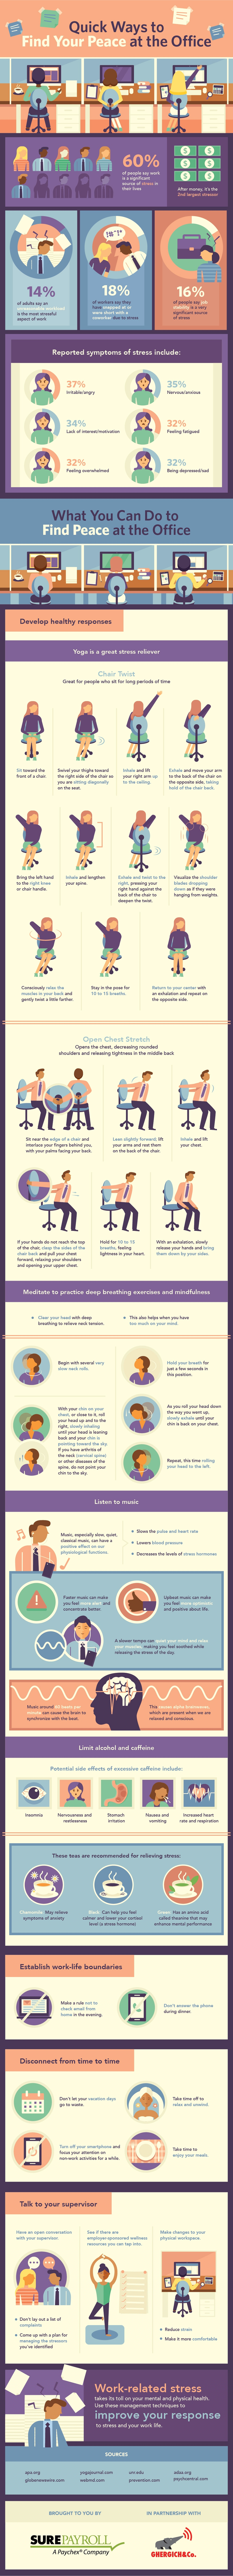 peace-at-the-office-infographic